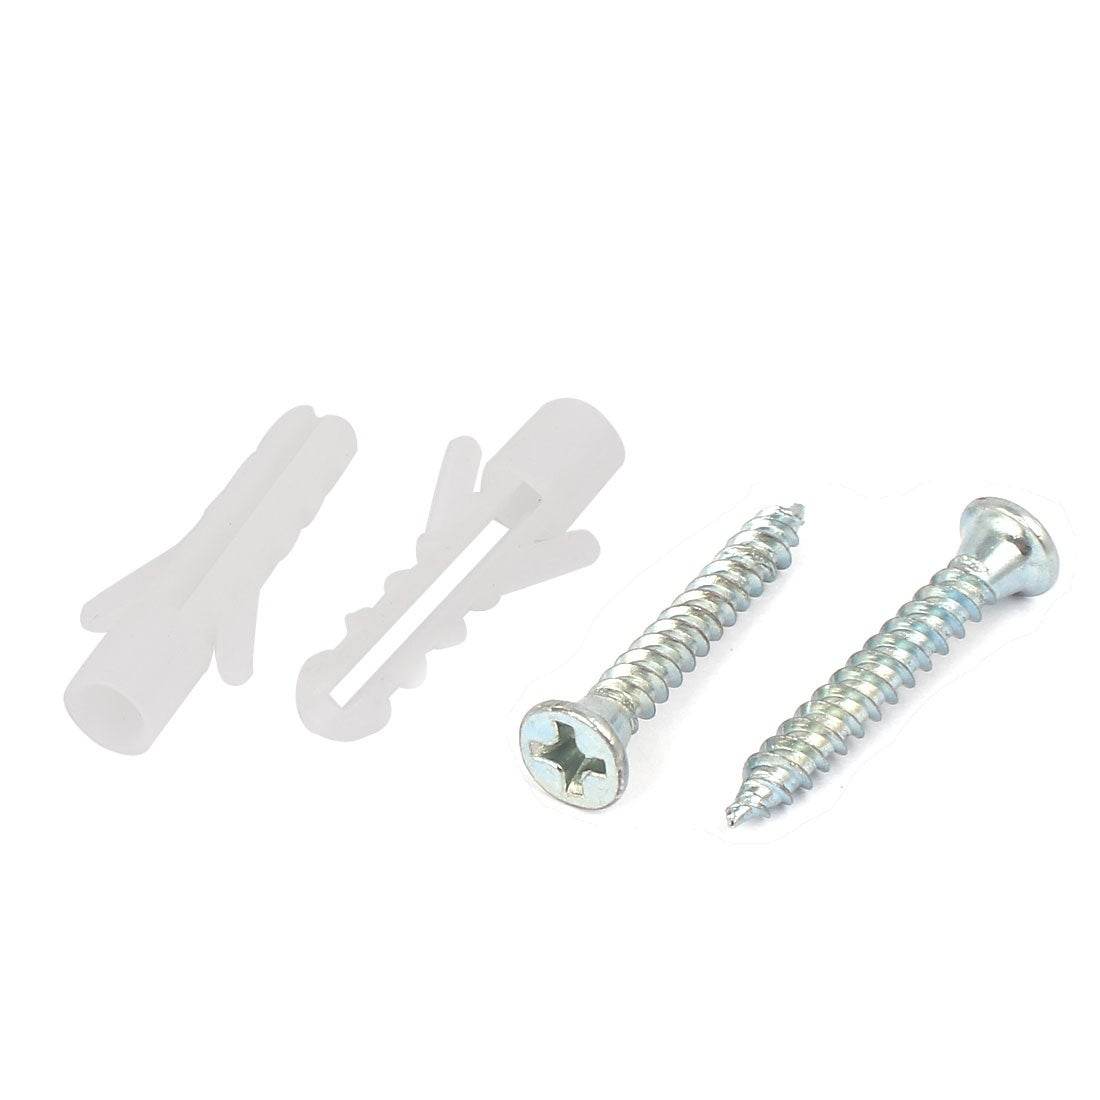 k0123.3086x40 Tilt Clamping Lever Size 3/M08X40/Zinc Bright Chrome-Plated Complete Pack of 1 Stainless Steel